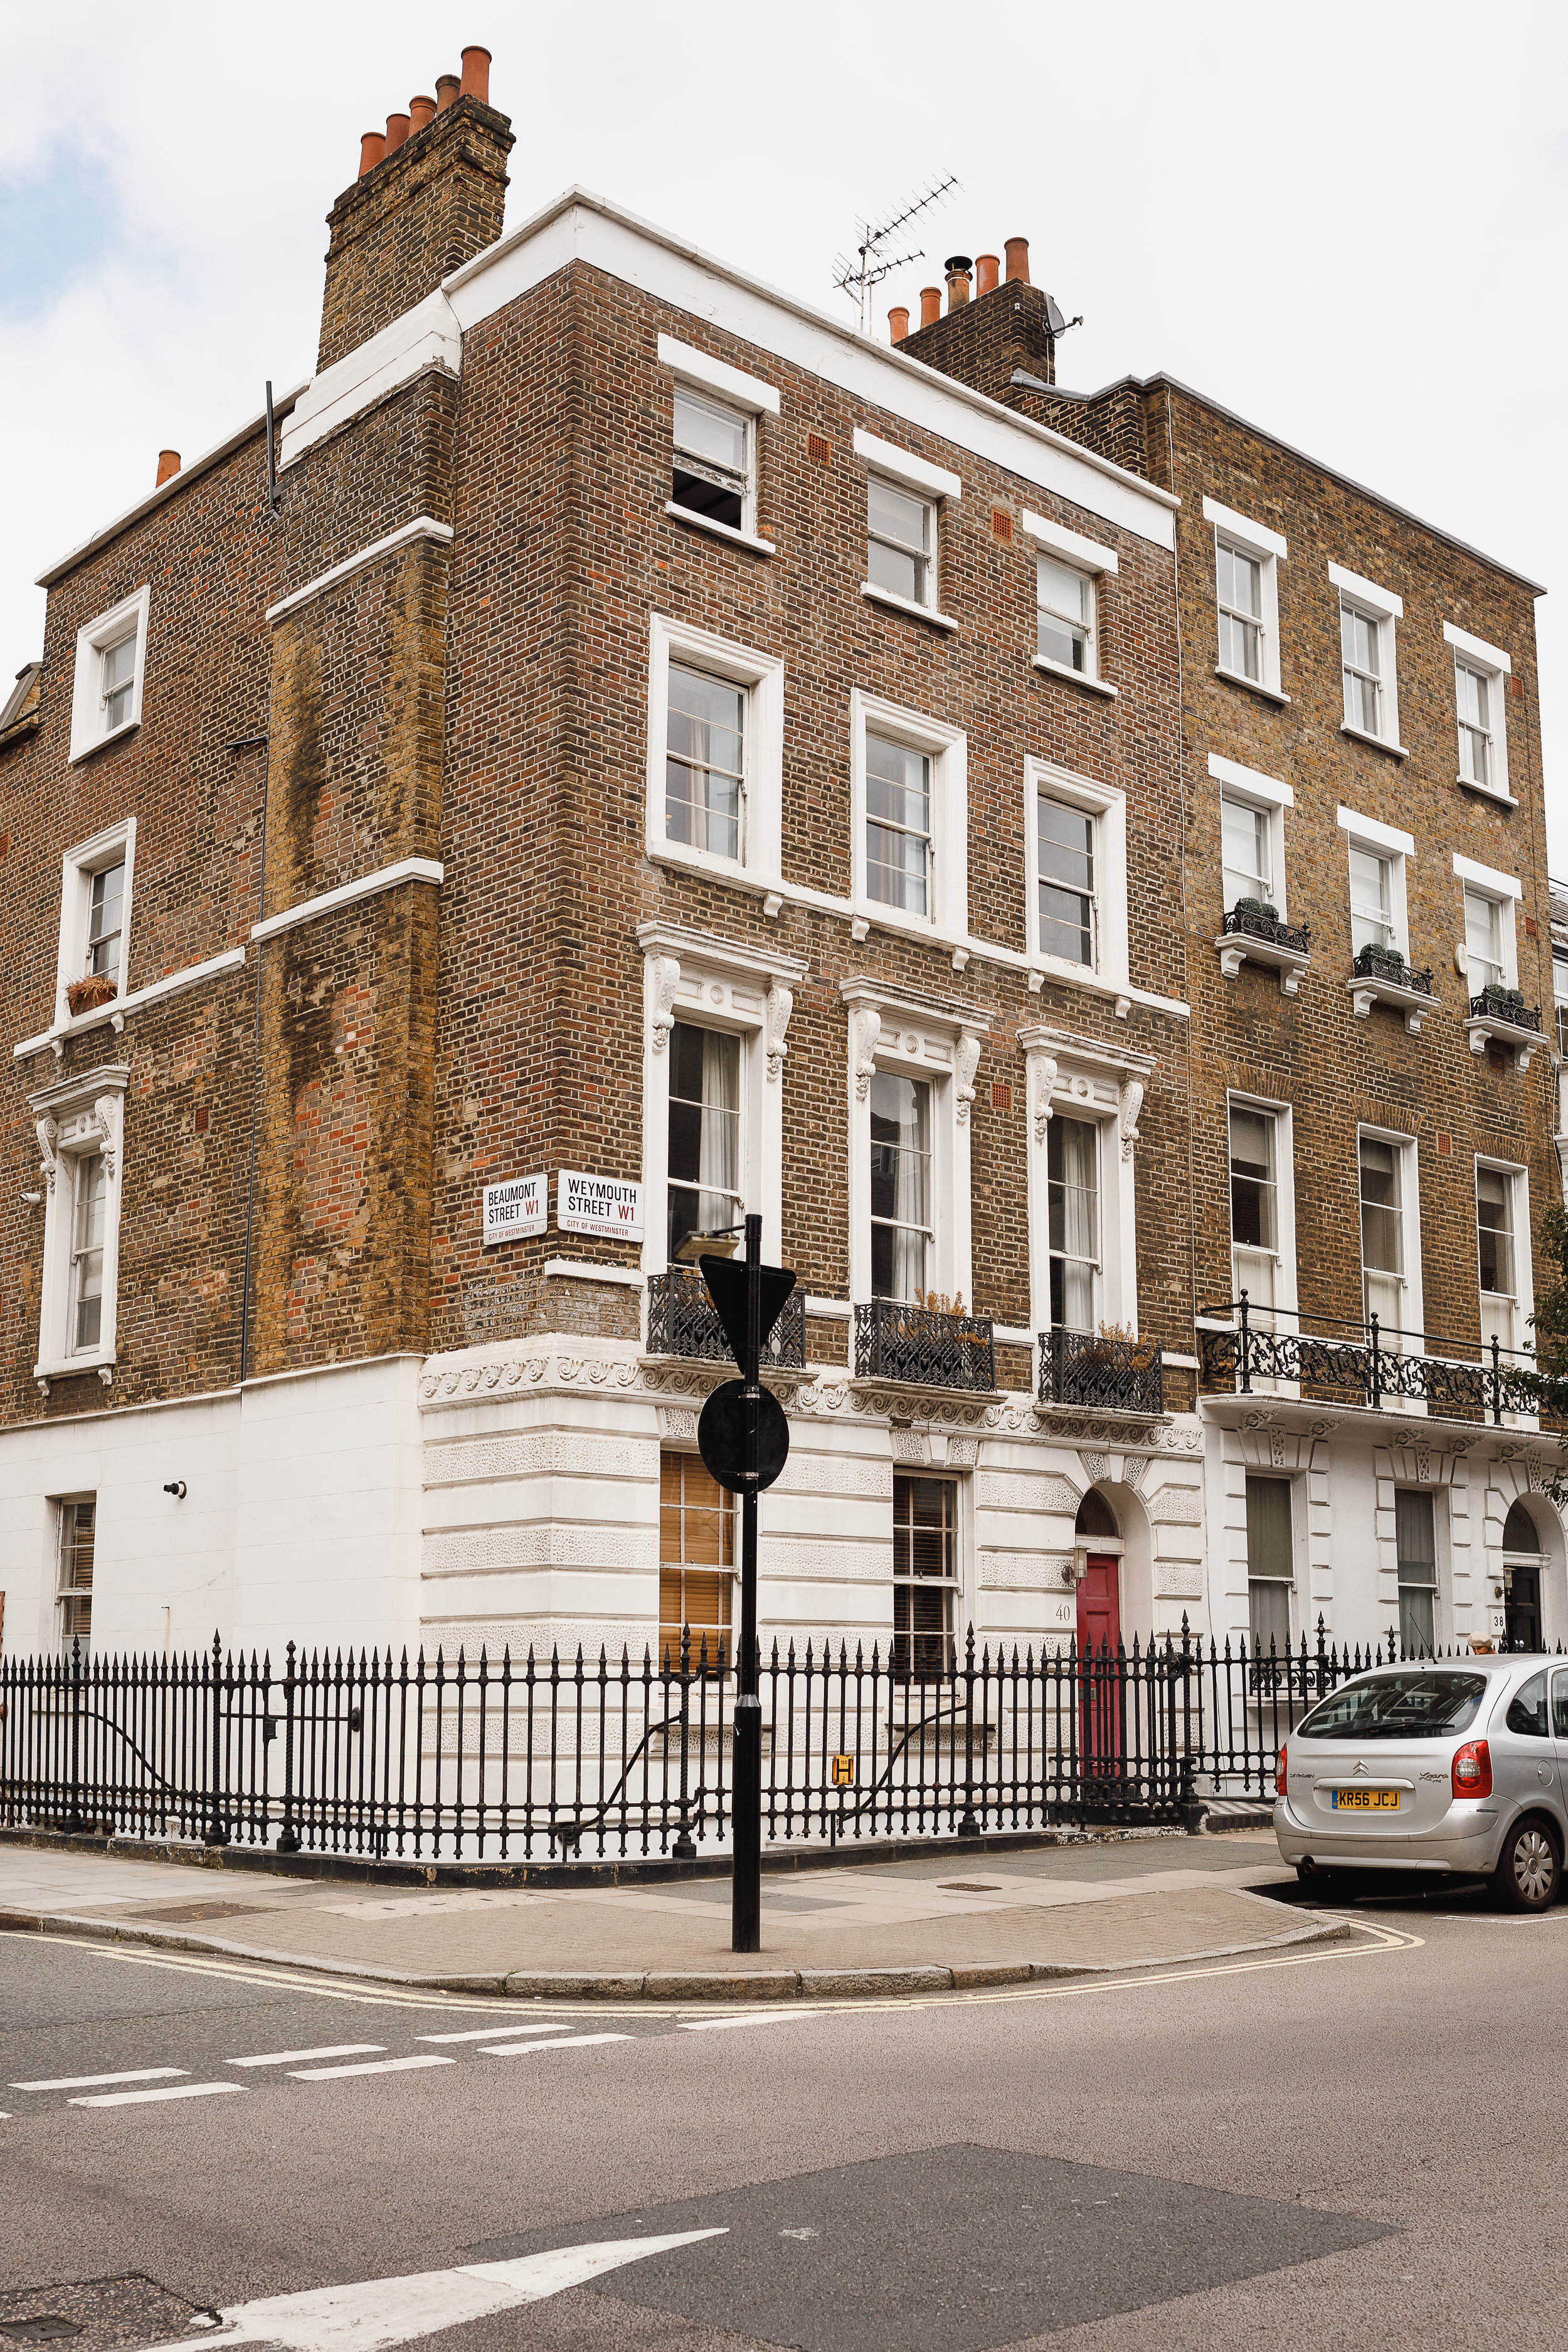 Dr Herring's Rest Home for Soldiers in Weymouth Street today.